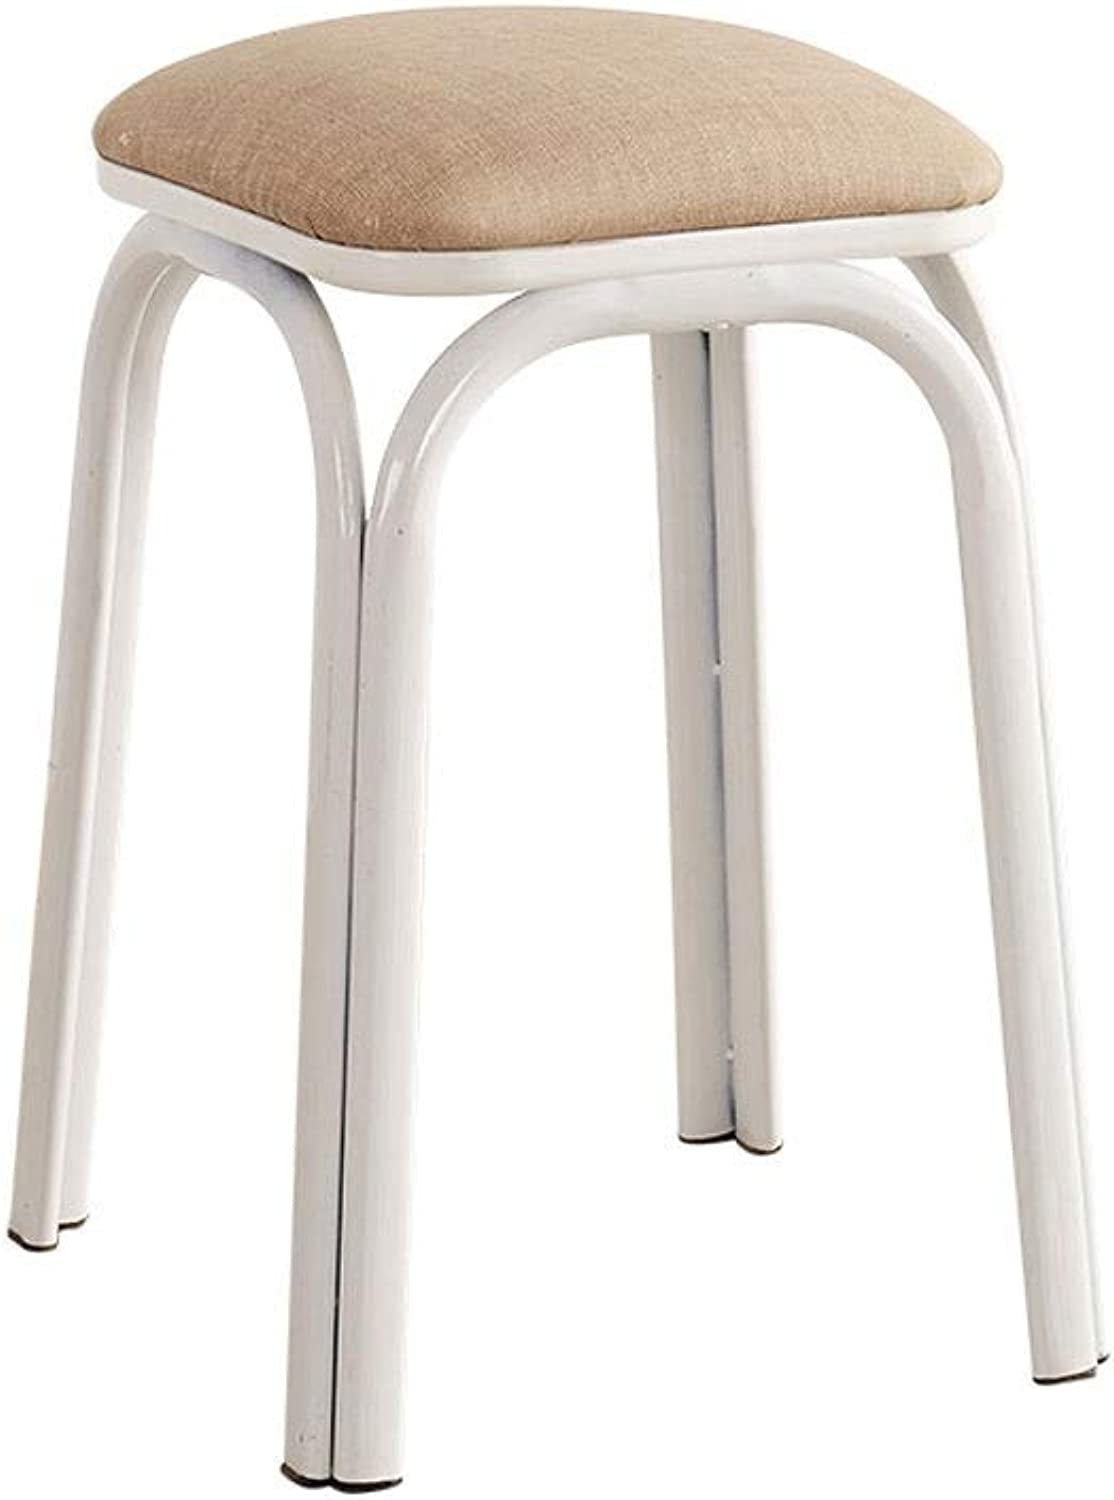 Metal Dining Table Stool, High Resilience Sponge Filled Square Stool Simple Chair, Cloth Seat Surface - 26cm X 46cm (color   Brown)